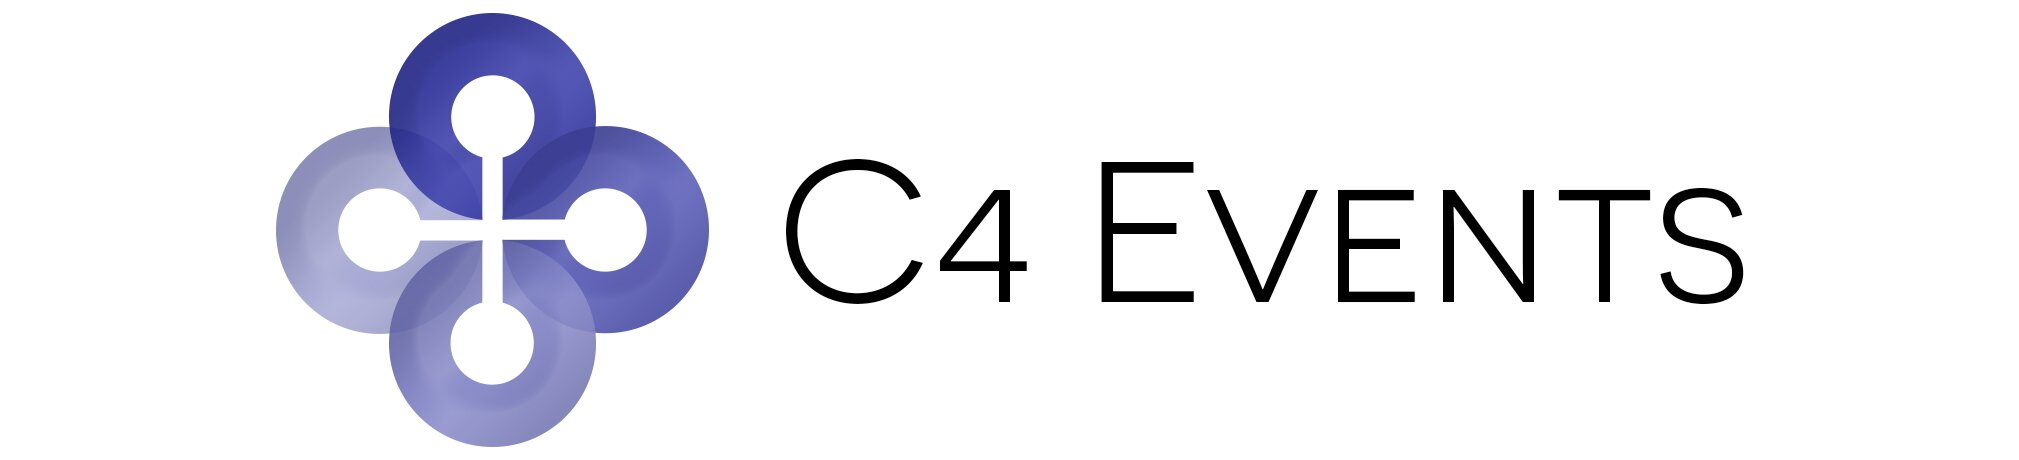 c4-events-logo